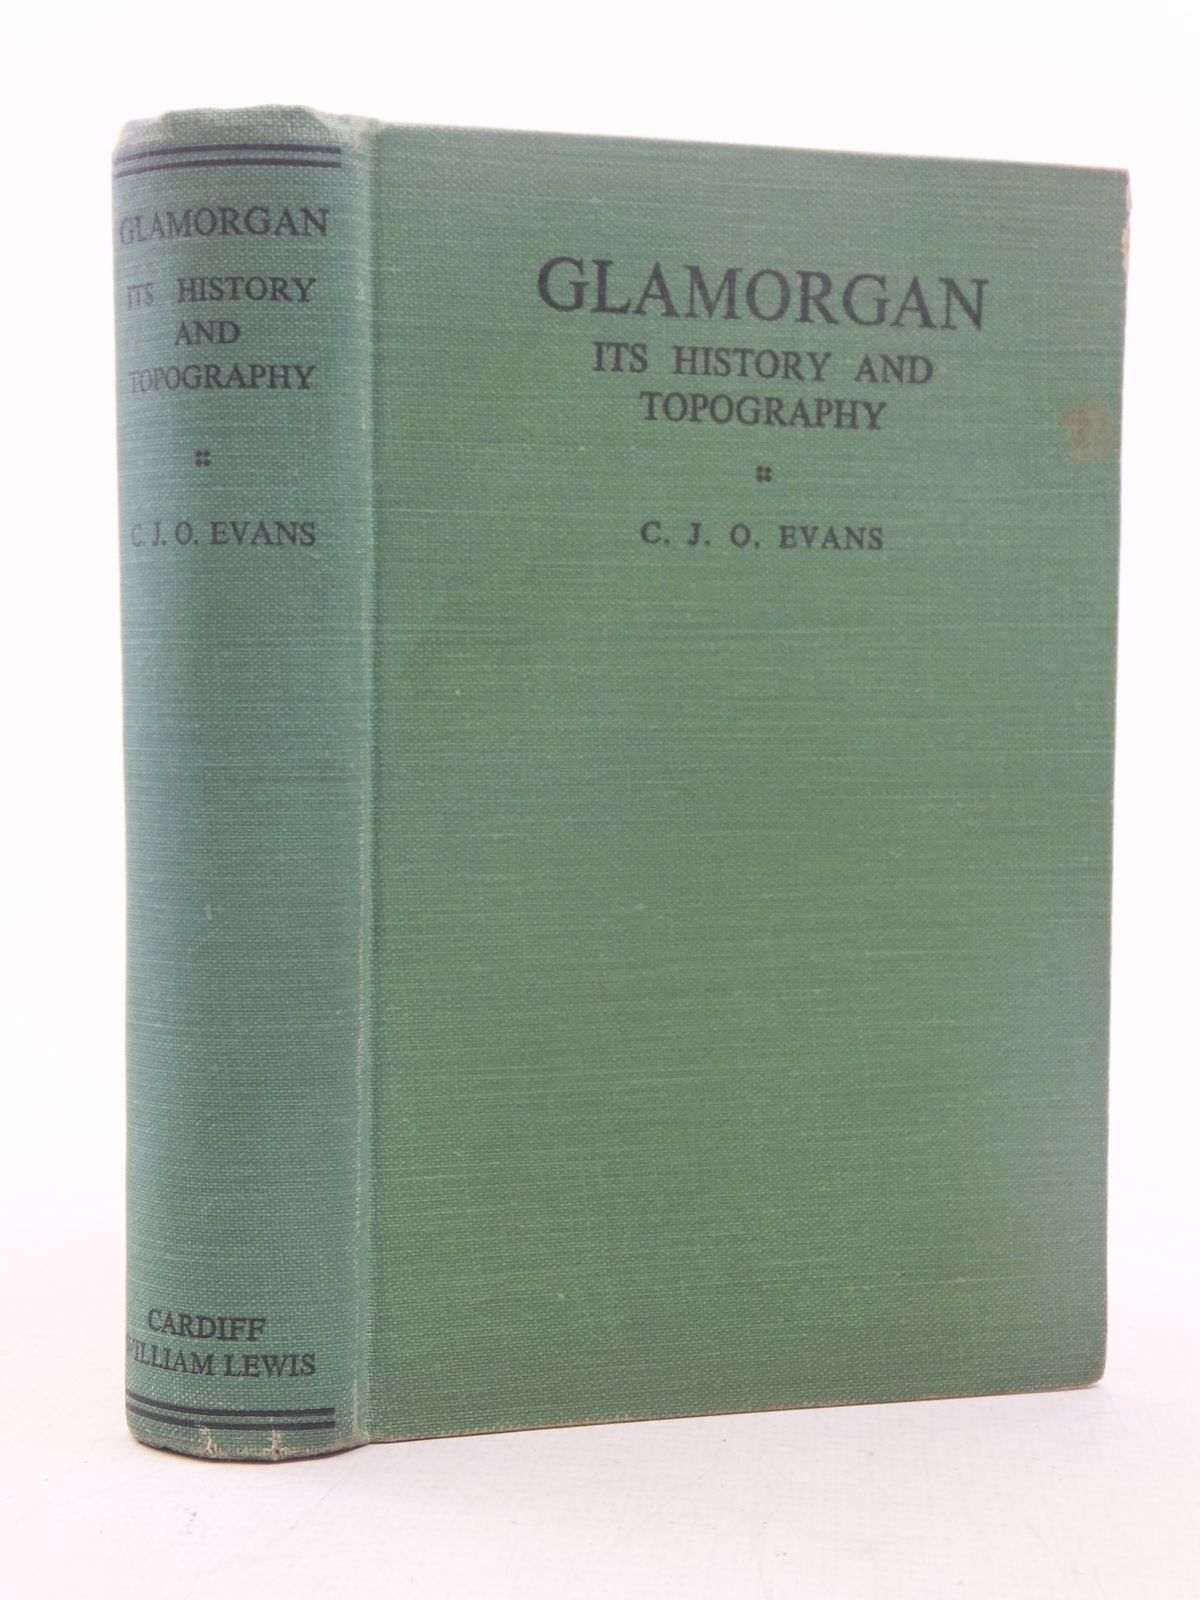 Photo of GLAMORGAN ITS HISTORY AND TOPOGRAPHY written by Evans, C.J.O. published by William Lewis (printers) Ltd (STOCK CODE: 1607260)  for sale by Stella & Rose's Books